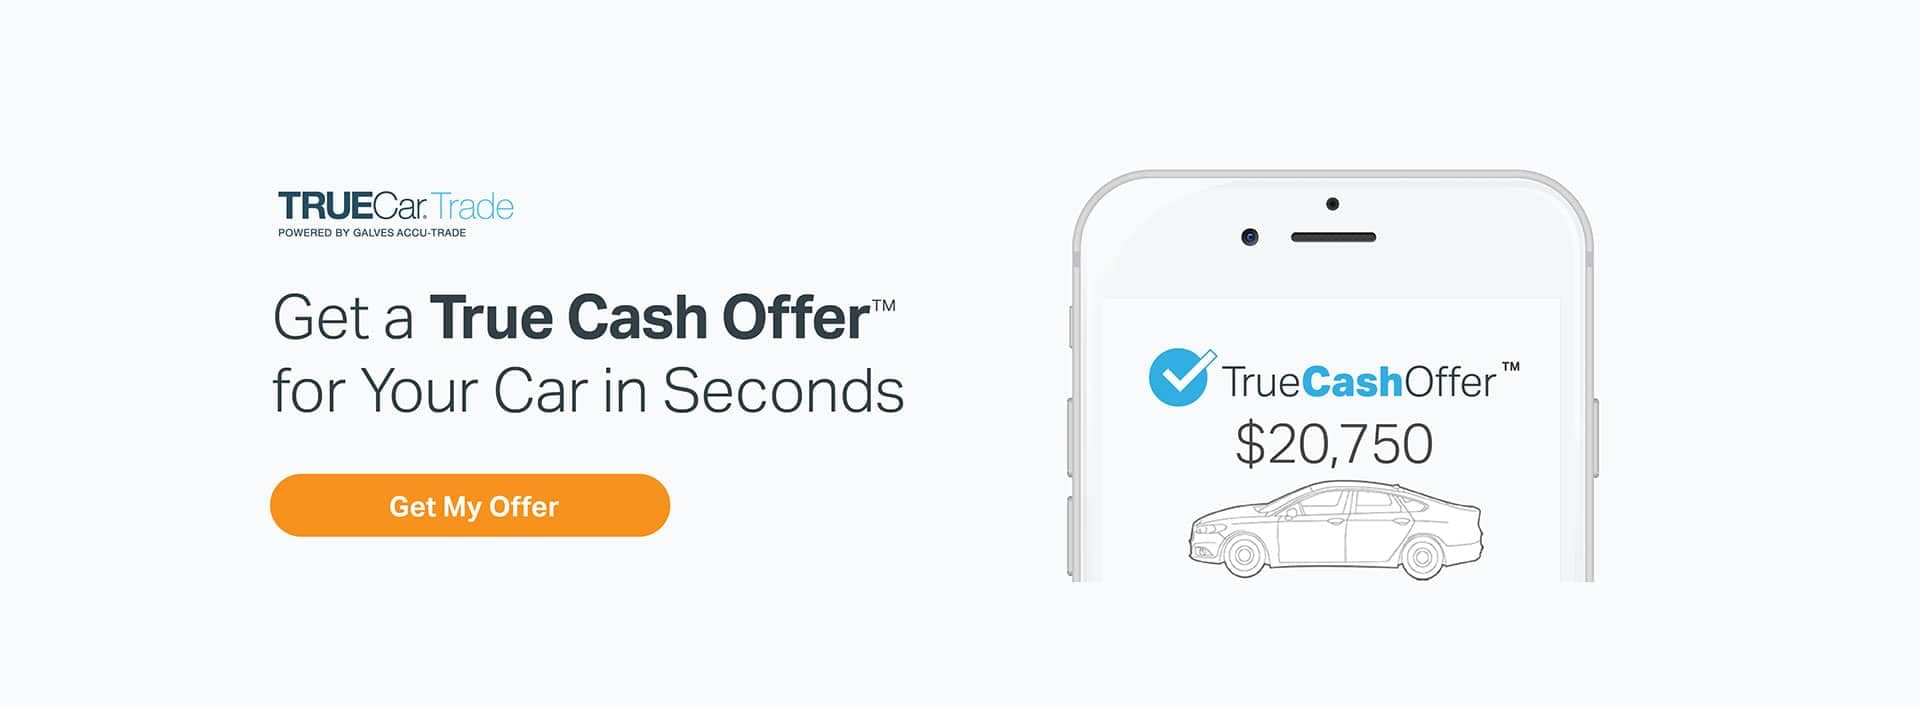 True-Cash-Offer-Desktop-2